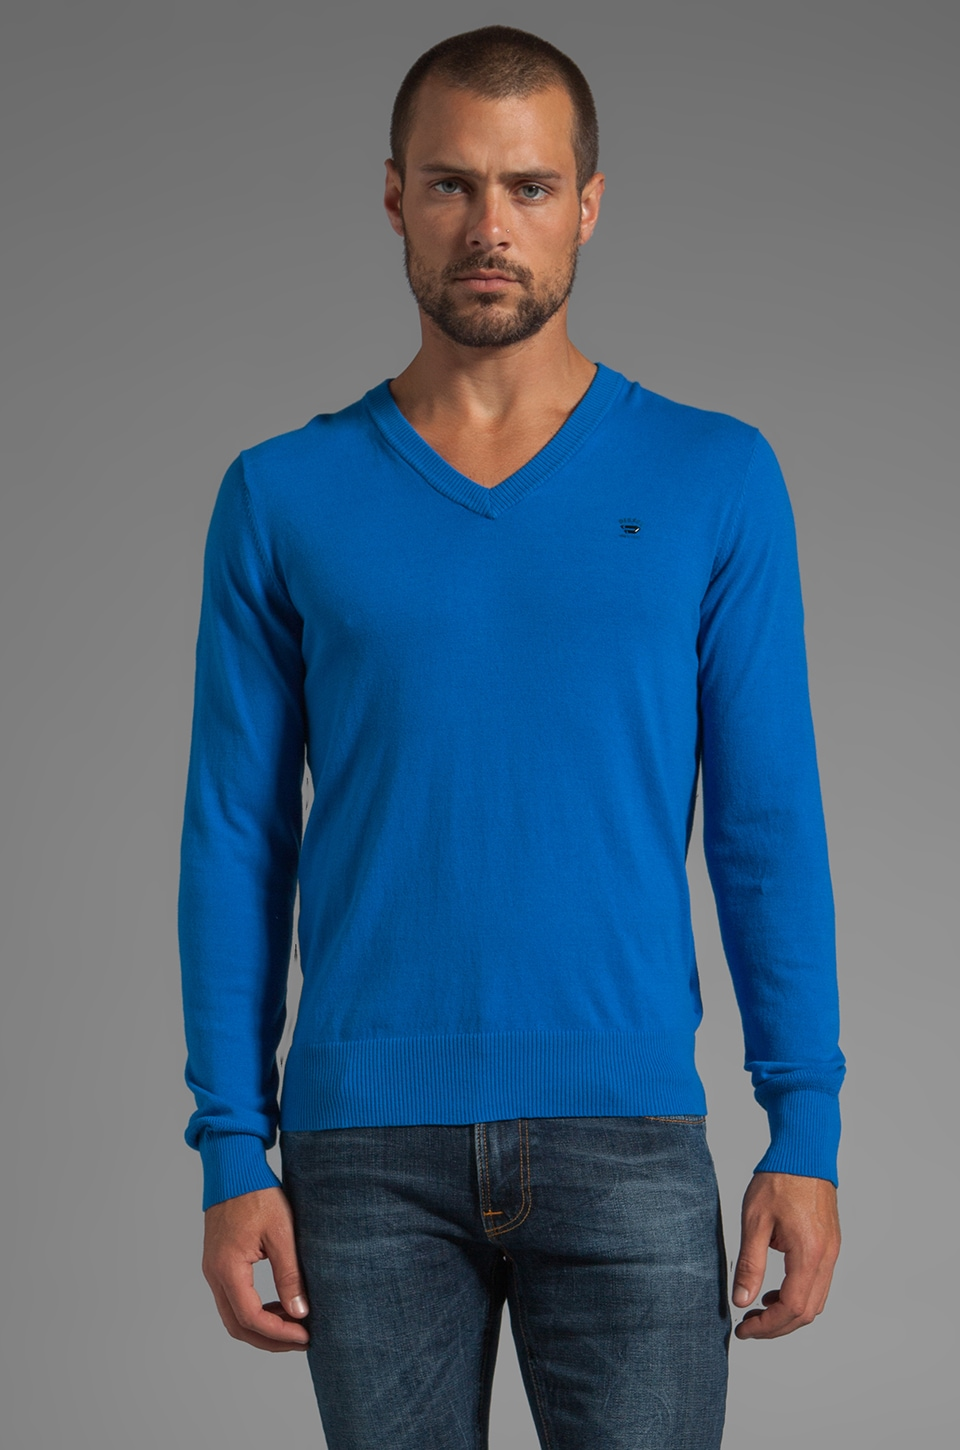 Diesel Meceneo V Neck Sweater in Ocean